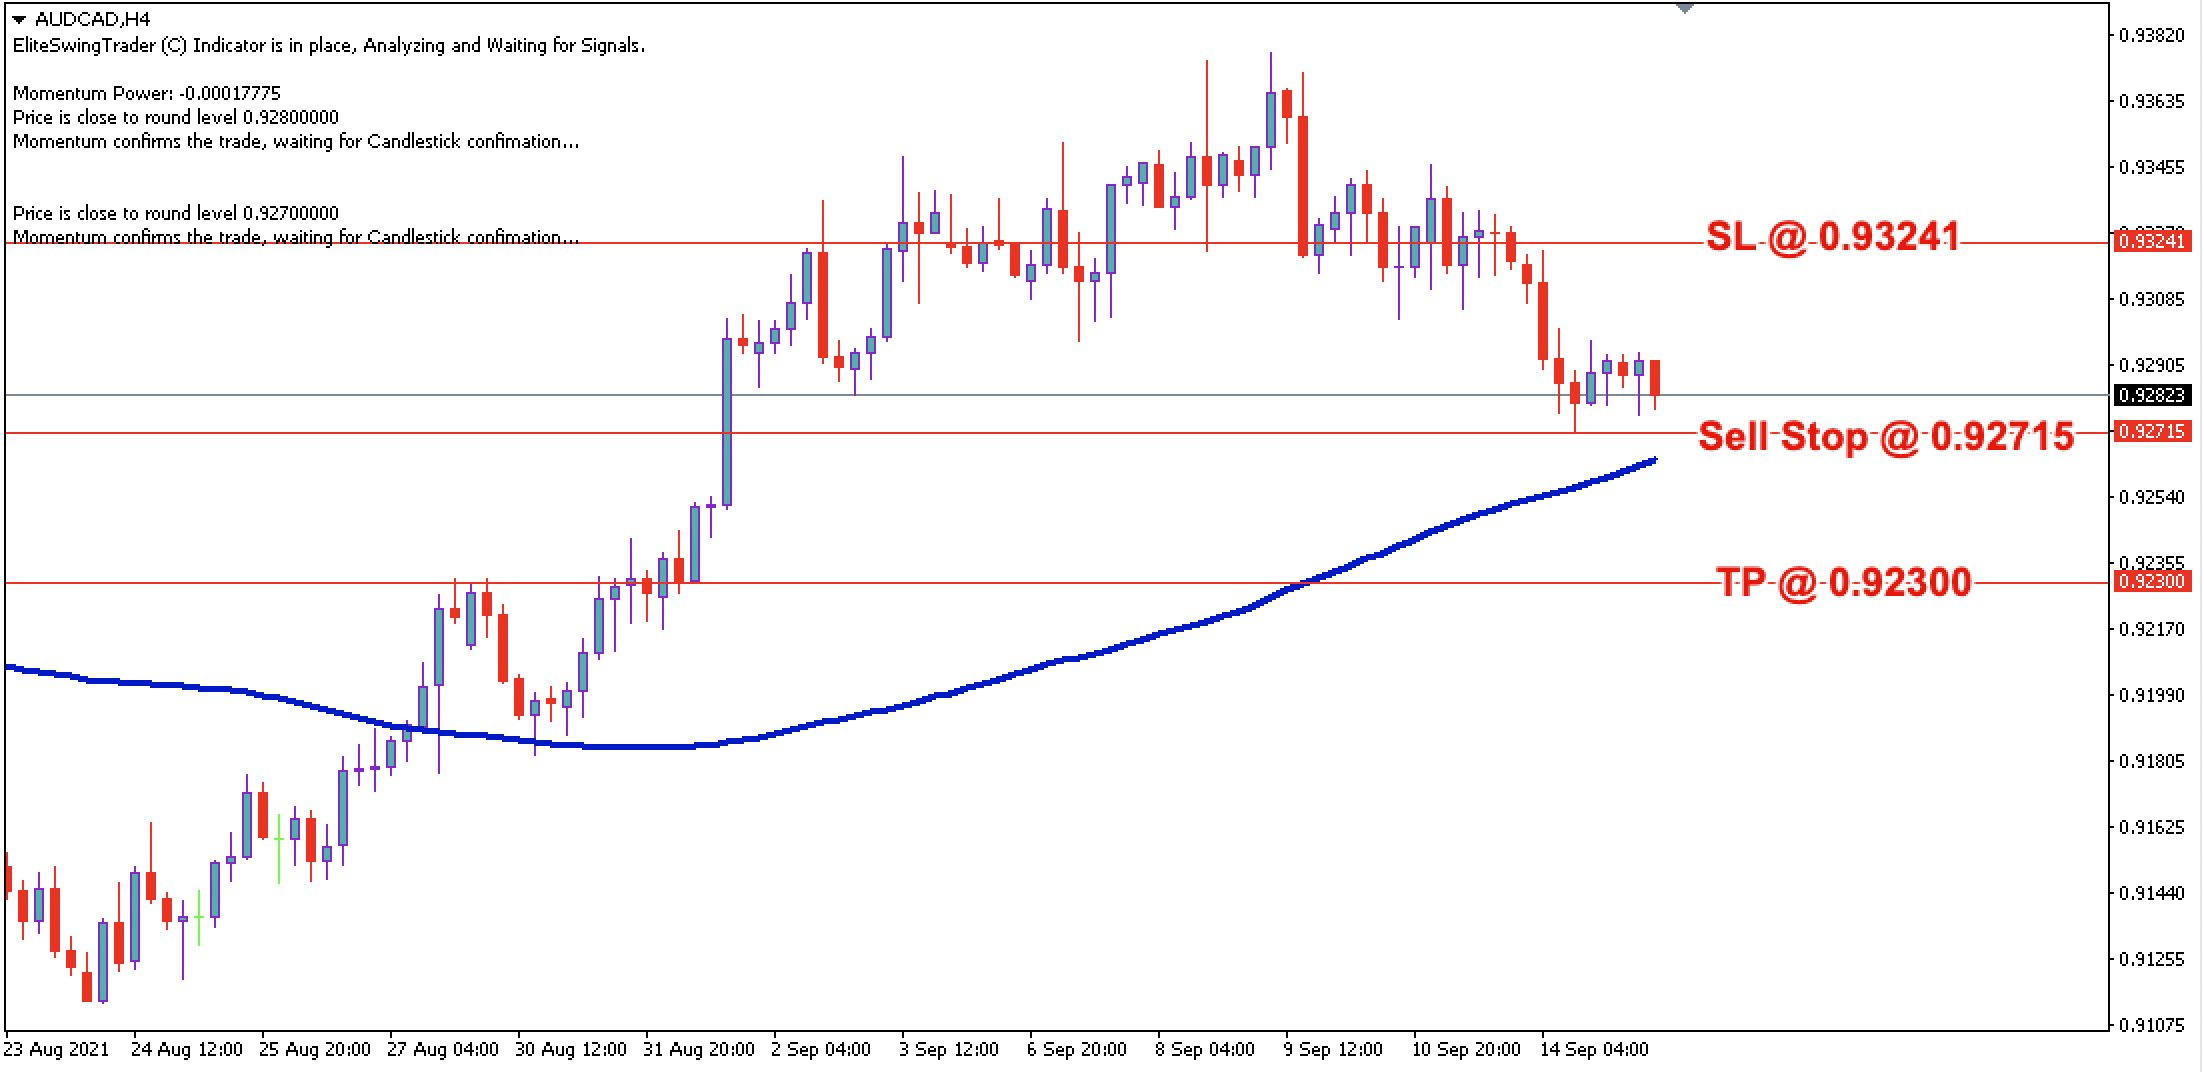 AUD/CAD Daily Price Forecast – 15th Sept 2021